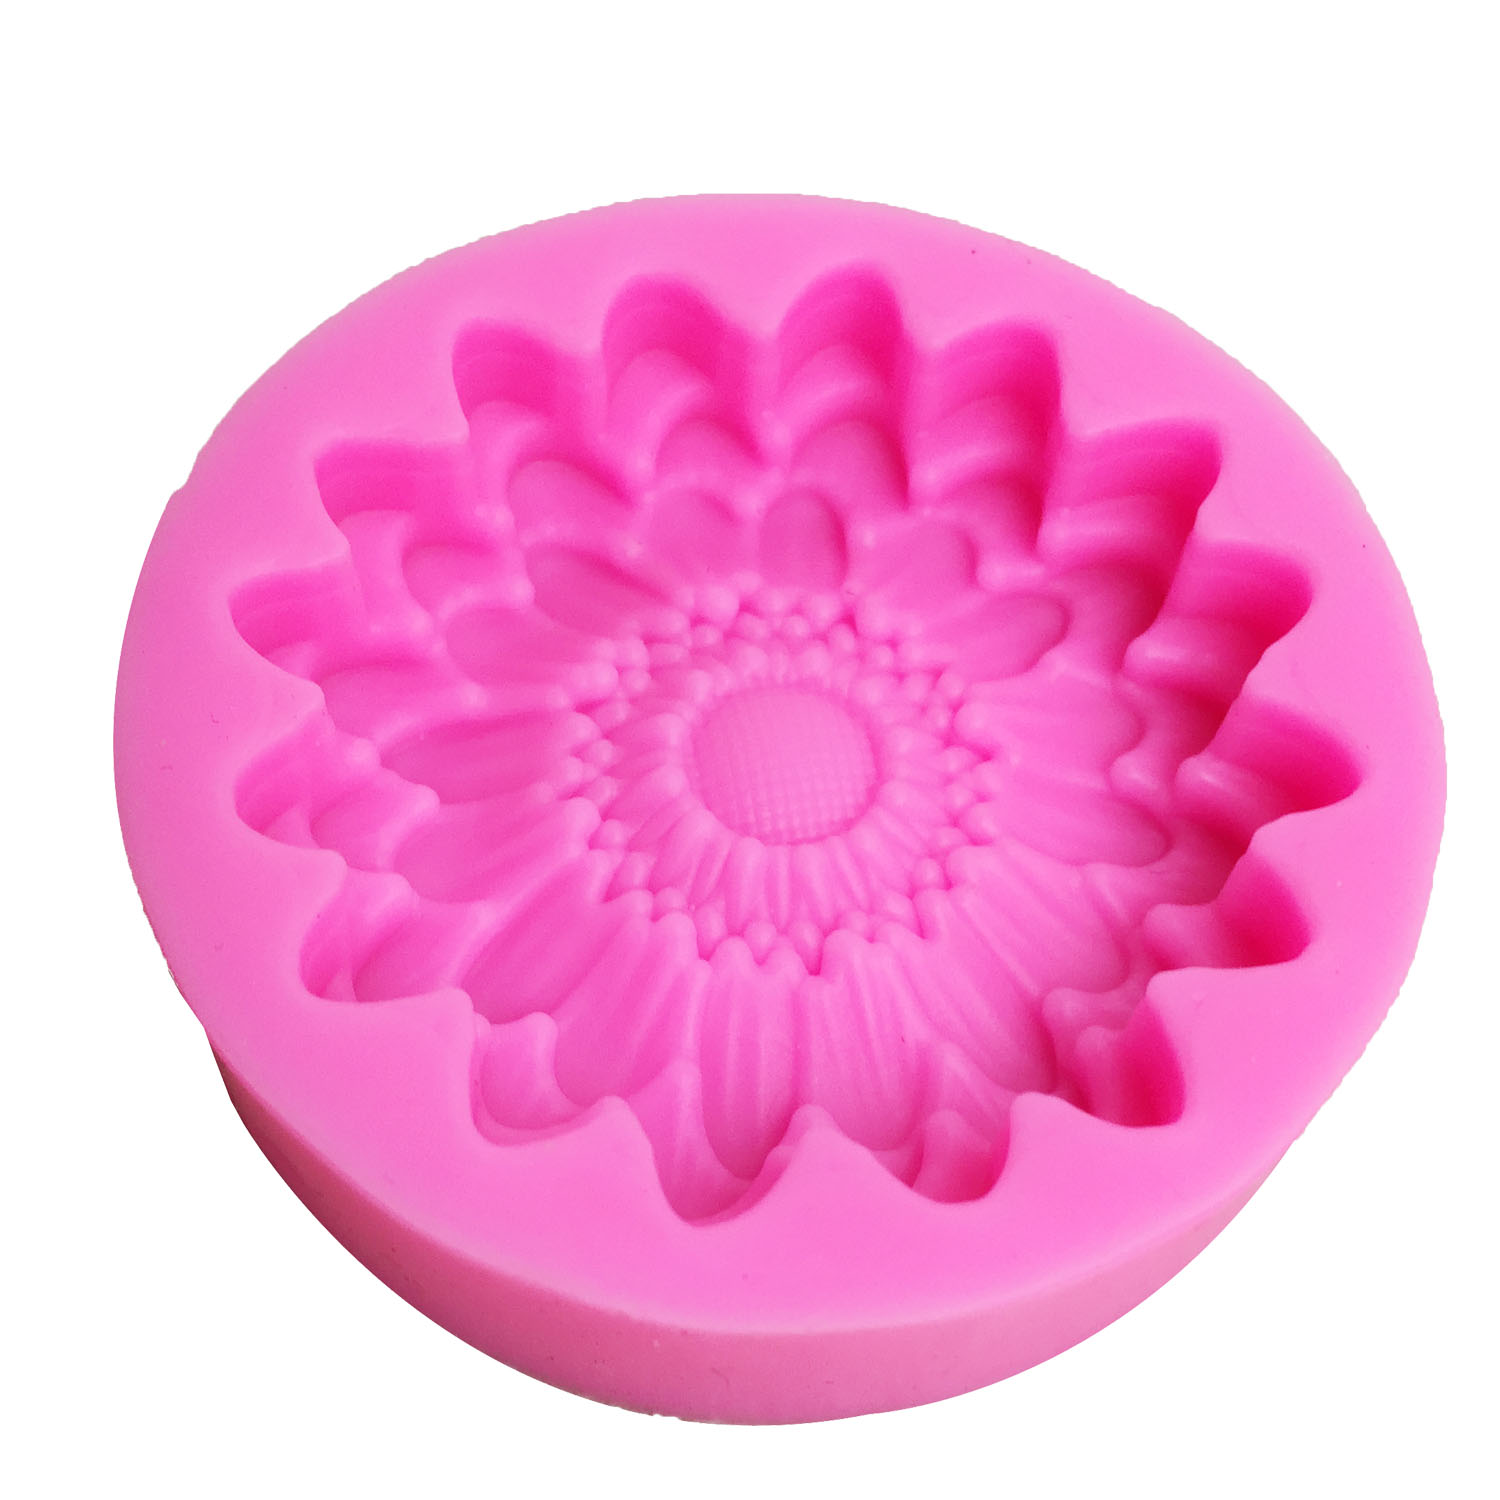 M0835 Chrysanthemums mold Flowers silicone moulds 3D jelly cake molds Sunflower cake decoration tools wholesale in Cake Molds from Home Garden